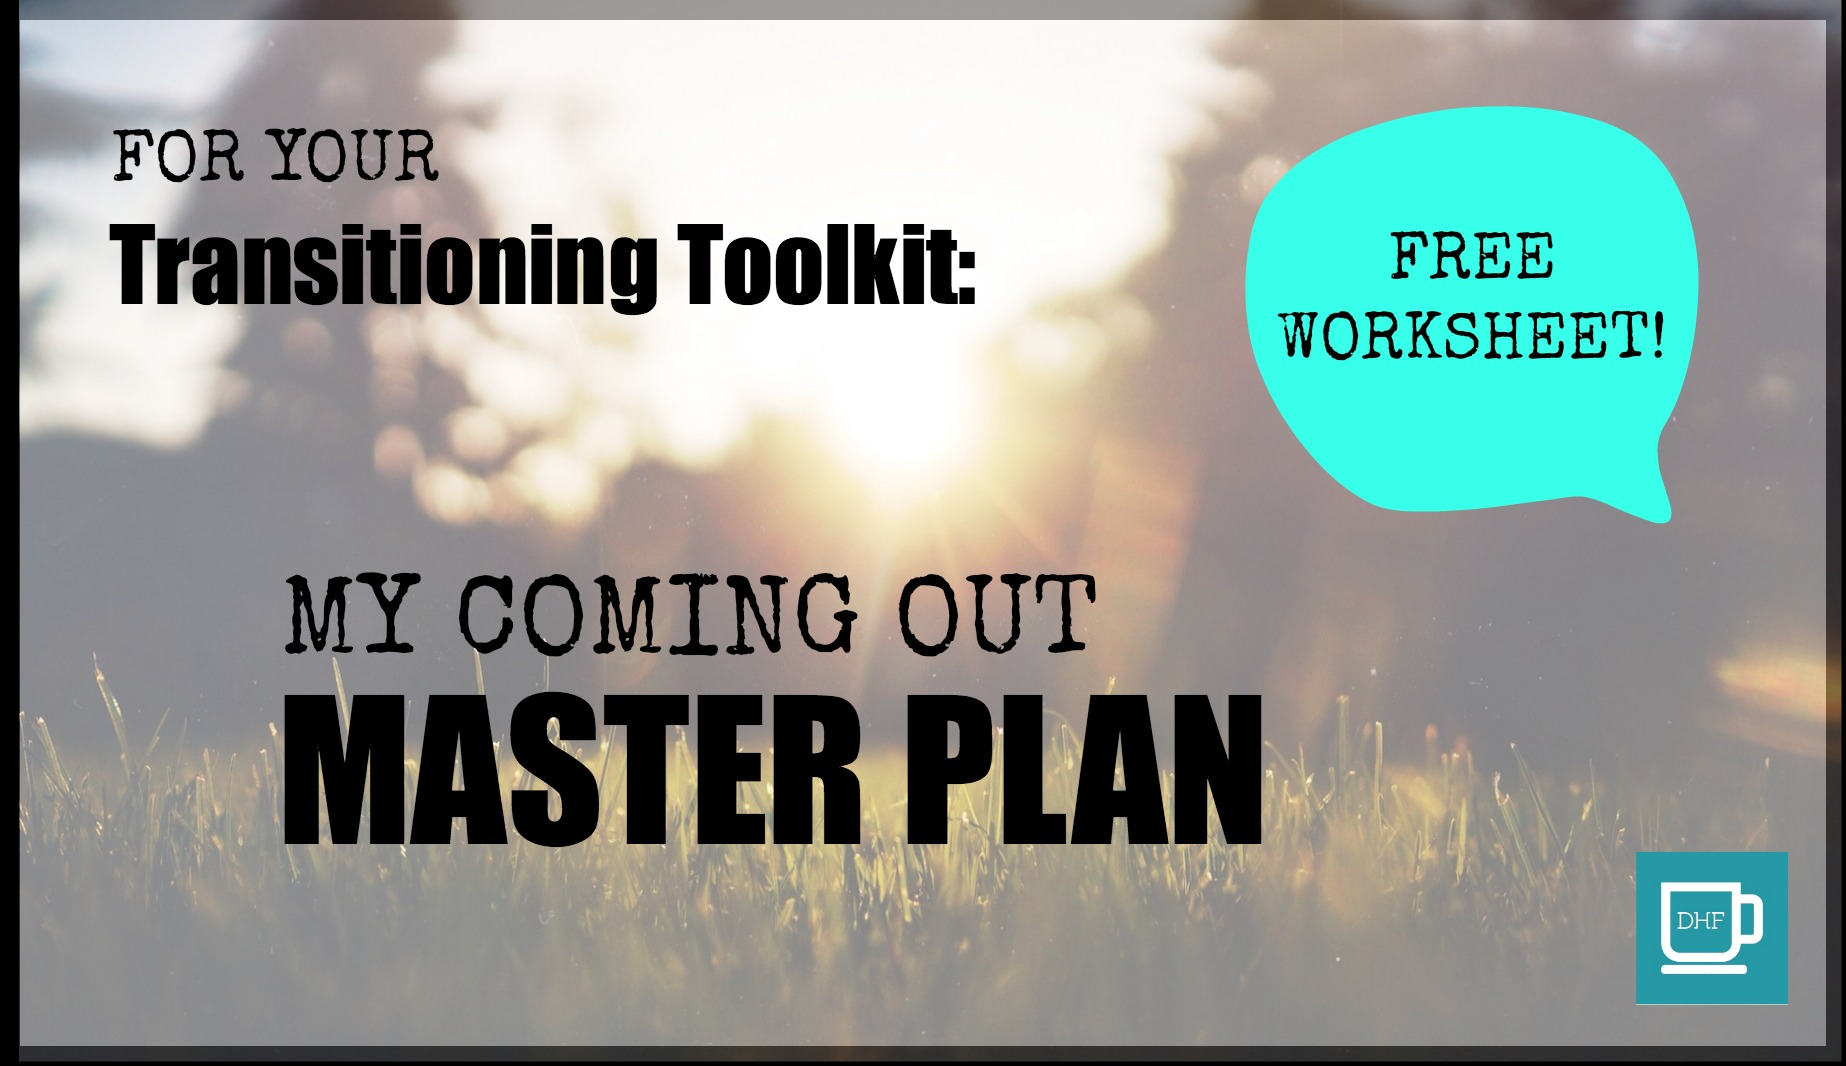 For Your Transitioning Toolkit My Coming Out Master Plan